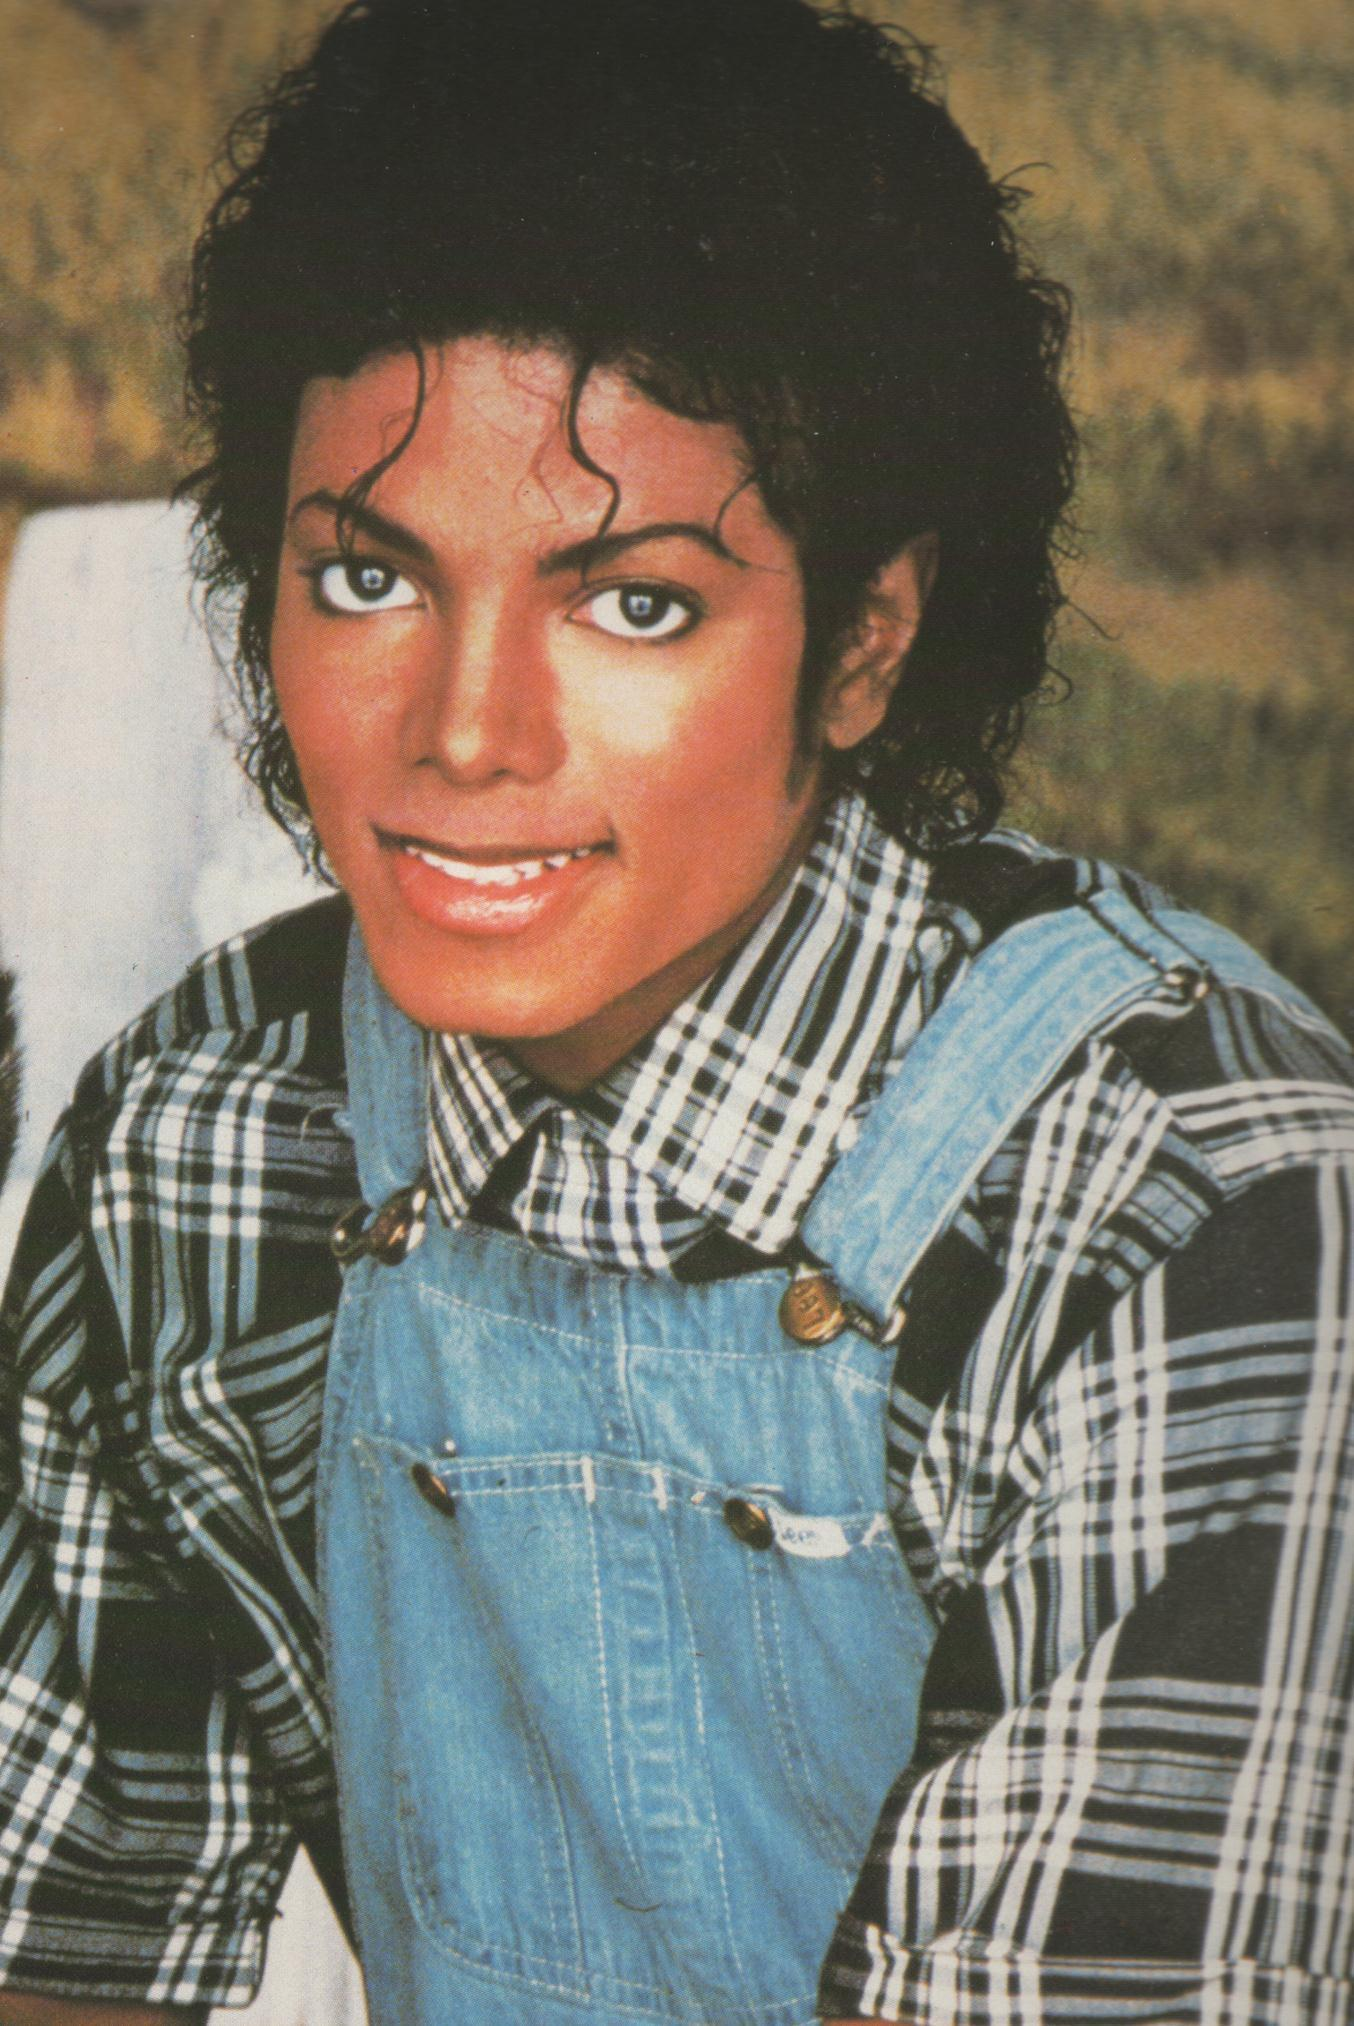 Mike <3